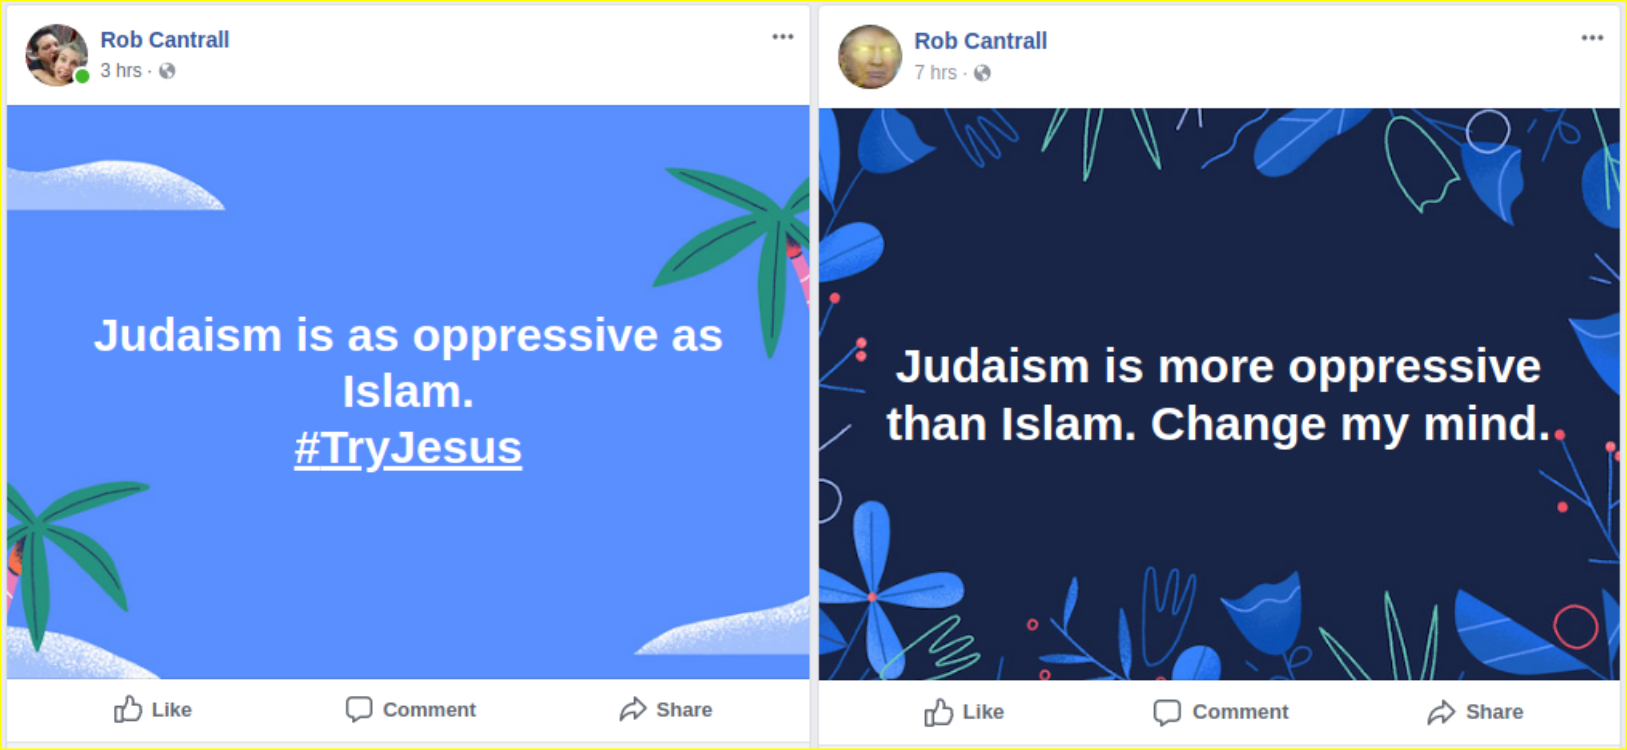 Rob Cantrall displays Islamophobia and antisemitism